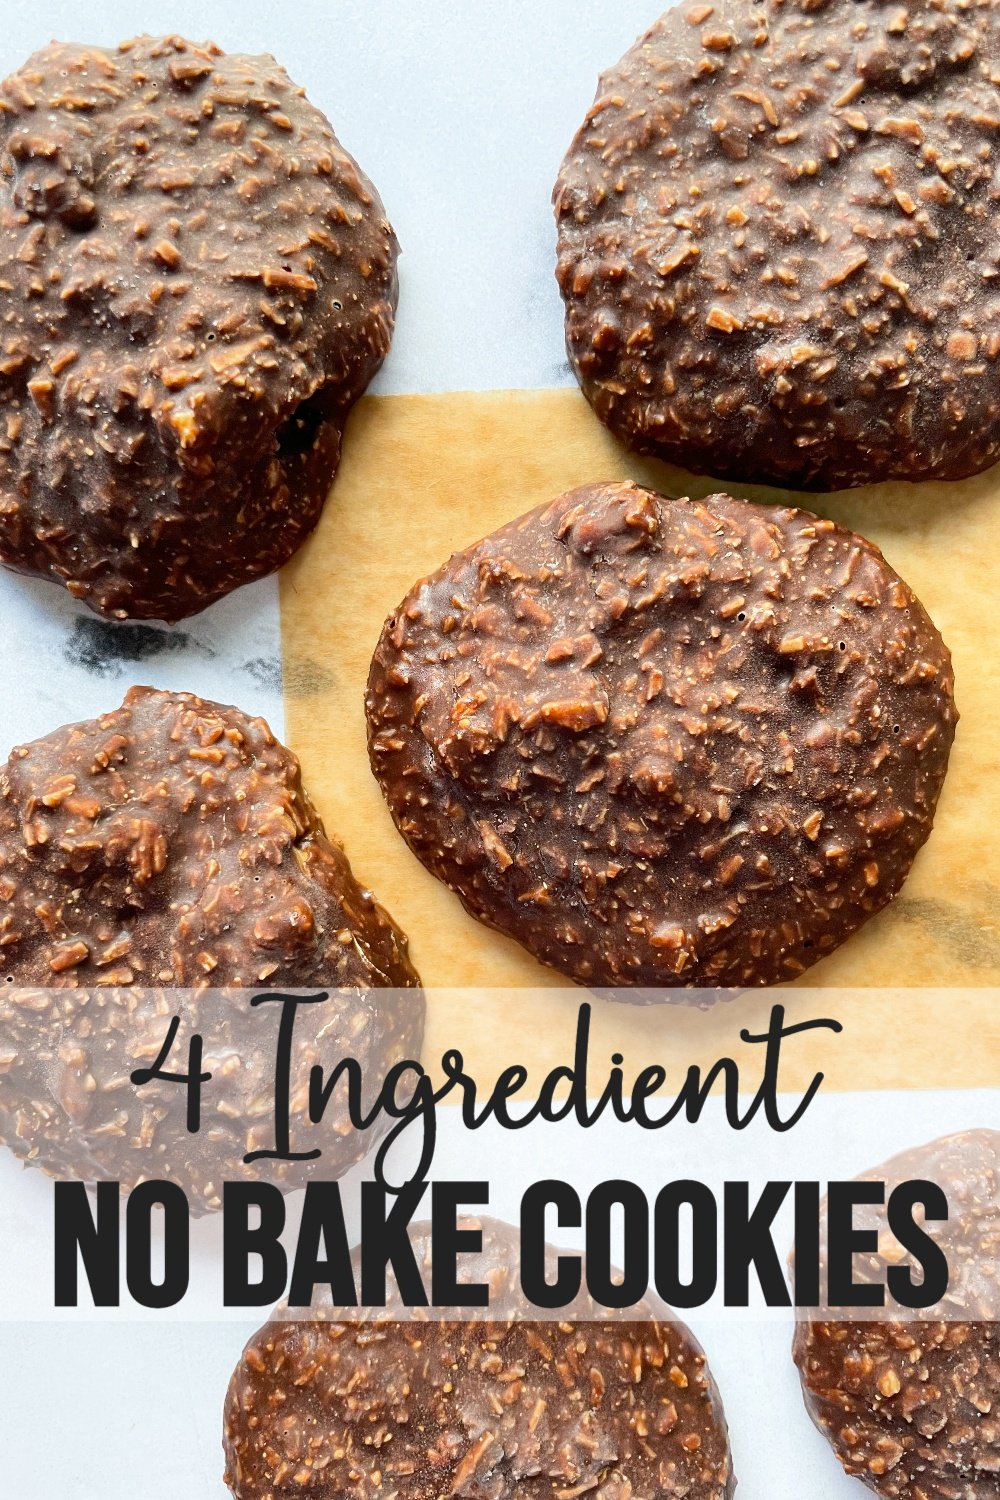 4 ingredient no bake cookies with text overlay